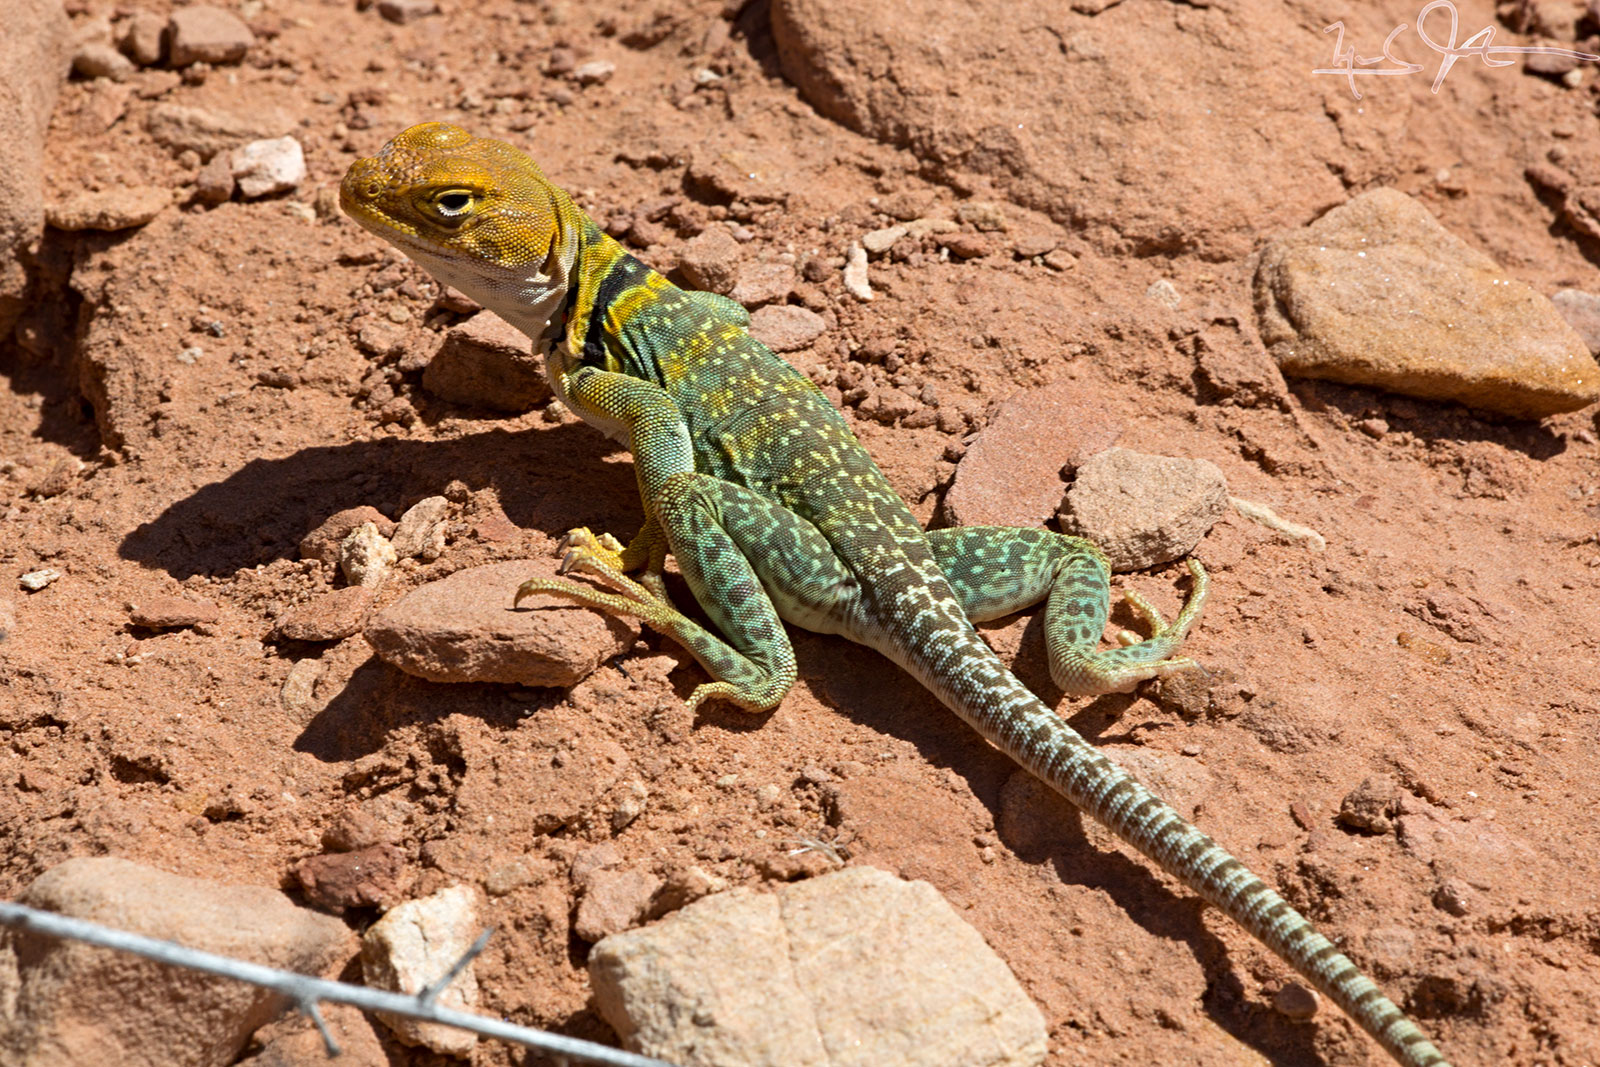 Collared Lizard,  Crotaphytus collaris .  Collared lizards feed mostly on insects, and can run on their hind legs.